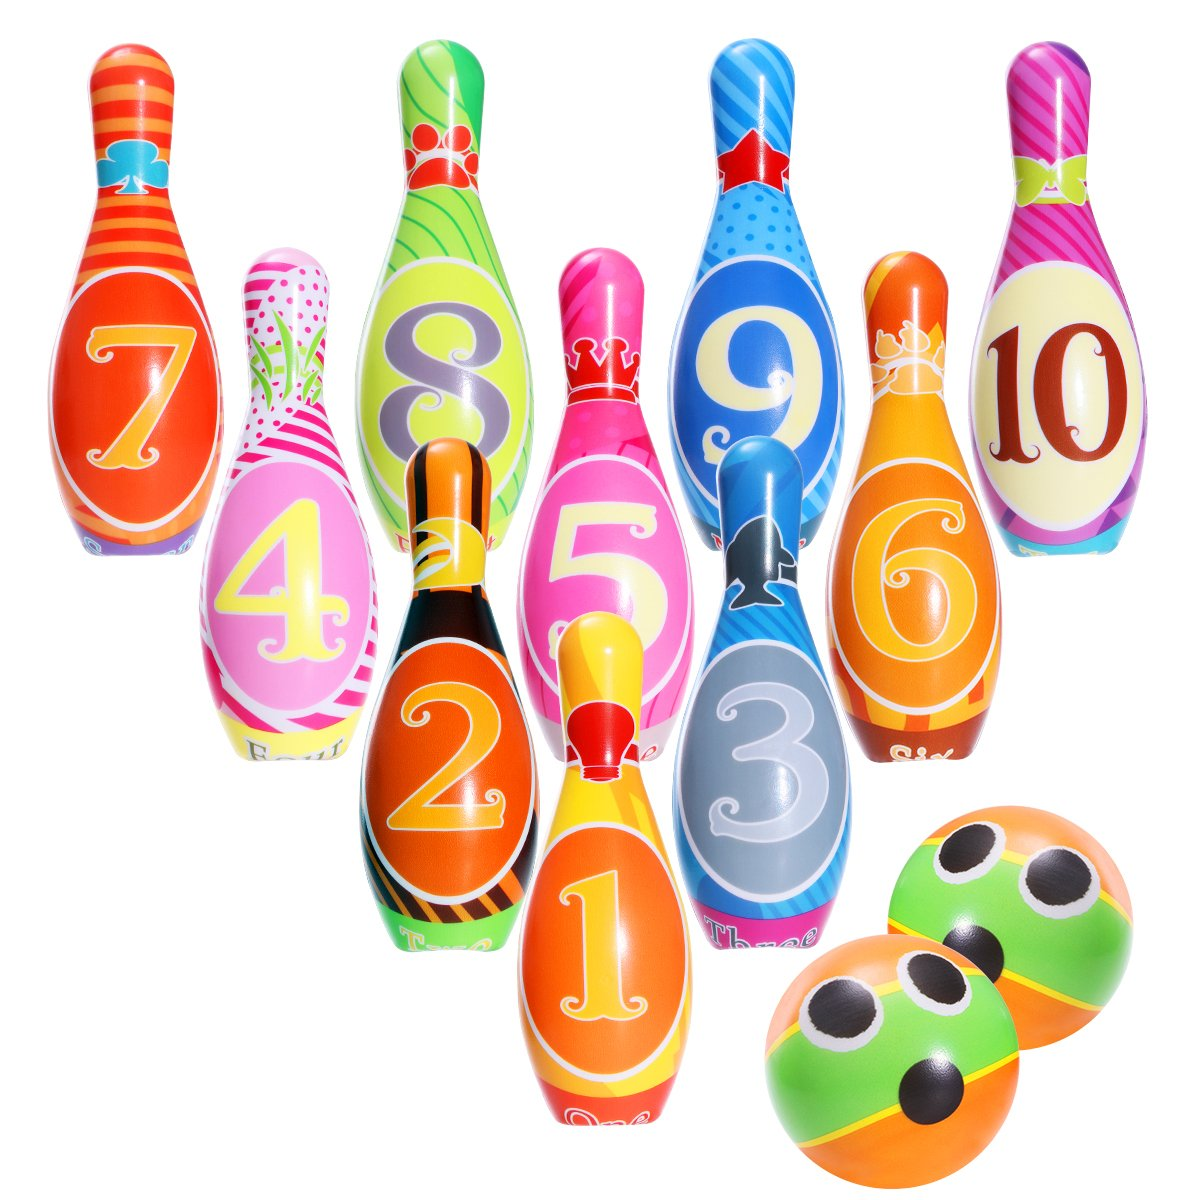 iBaseToy Kids Bowling Set, Bowling Games for Indoor & Outdoor Kids Bowling Play Set Foam Ball Toys Preschool Gifts For Early Development/Sport for Toddlers/Boys/Girls (10 Pins & 2 Bowling Balls)